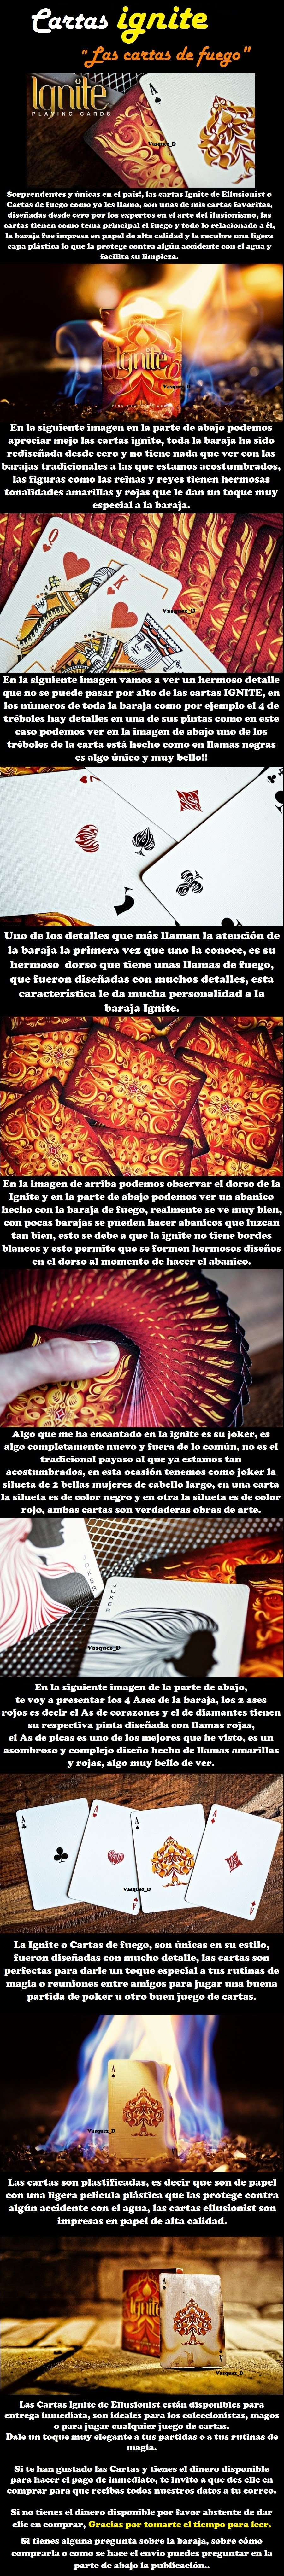 Ignite Cartas de fuego